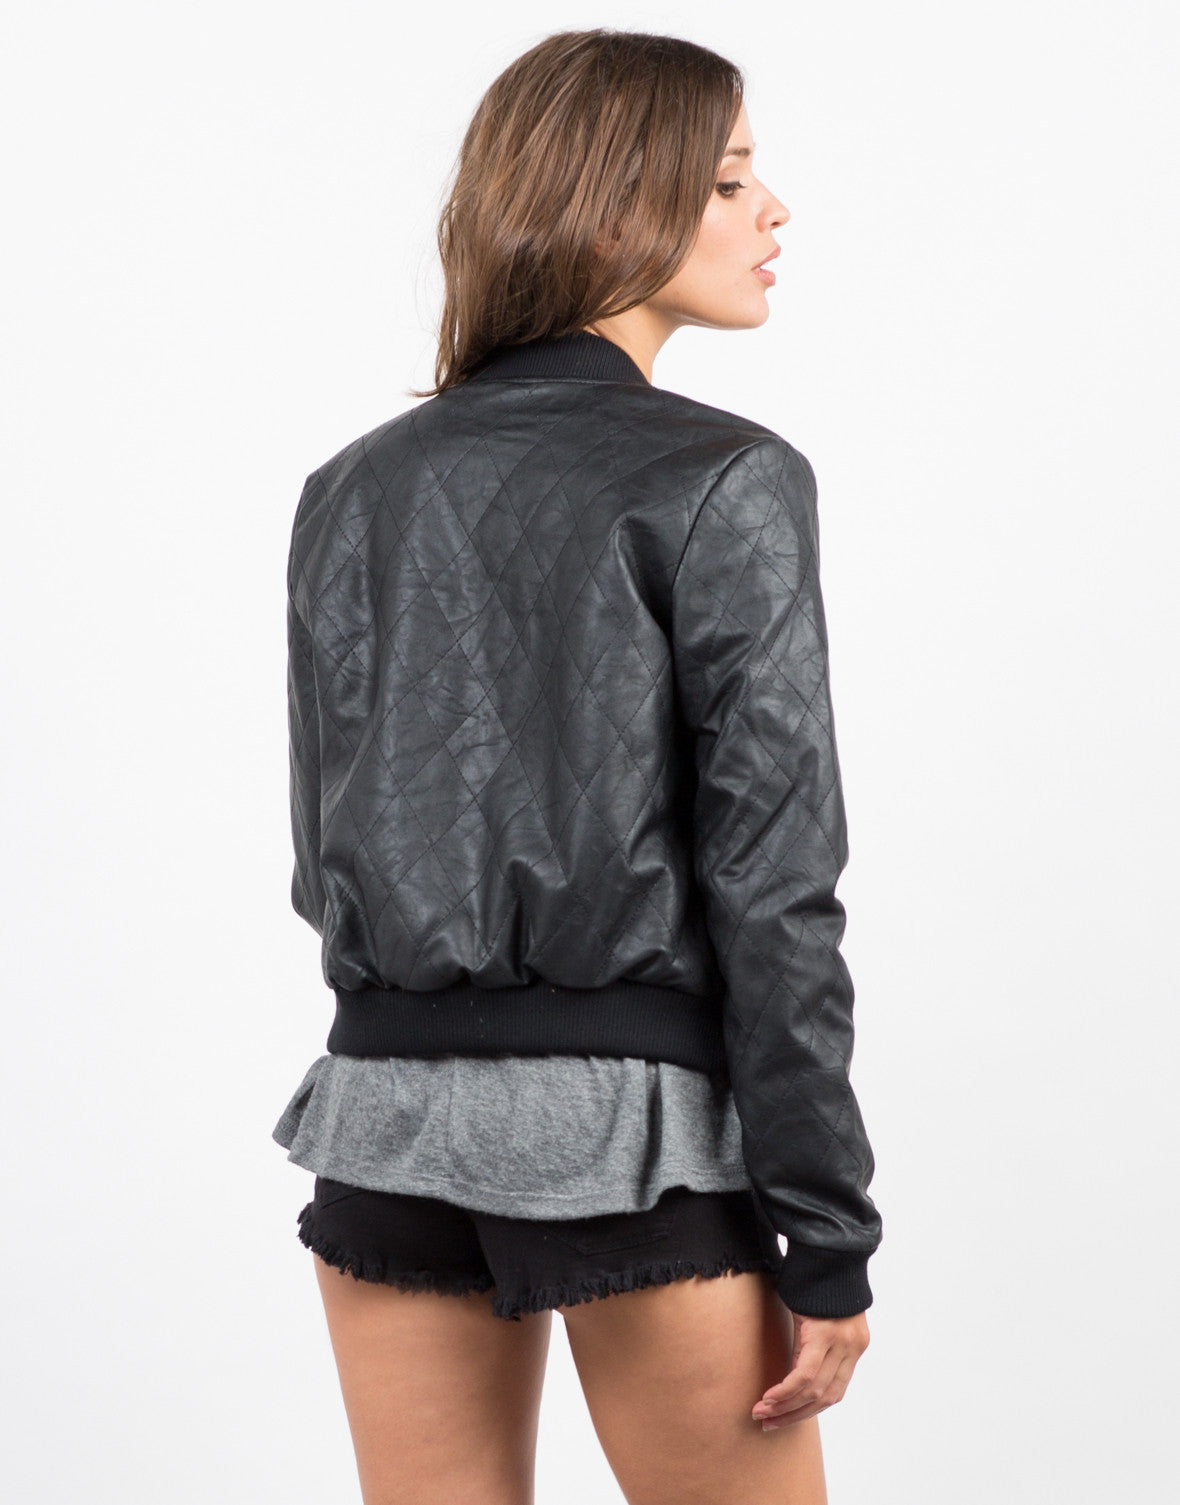 Back View of Quilted Leather Bomber Jacket